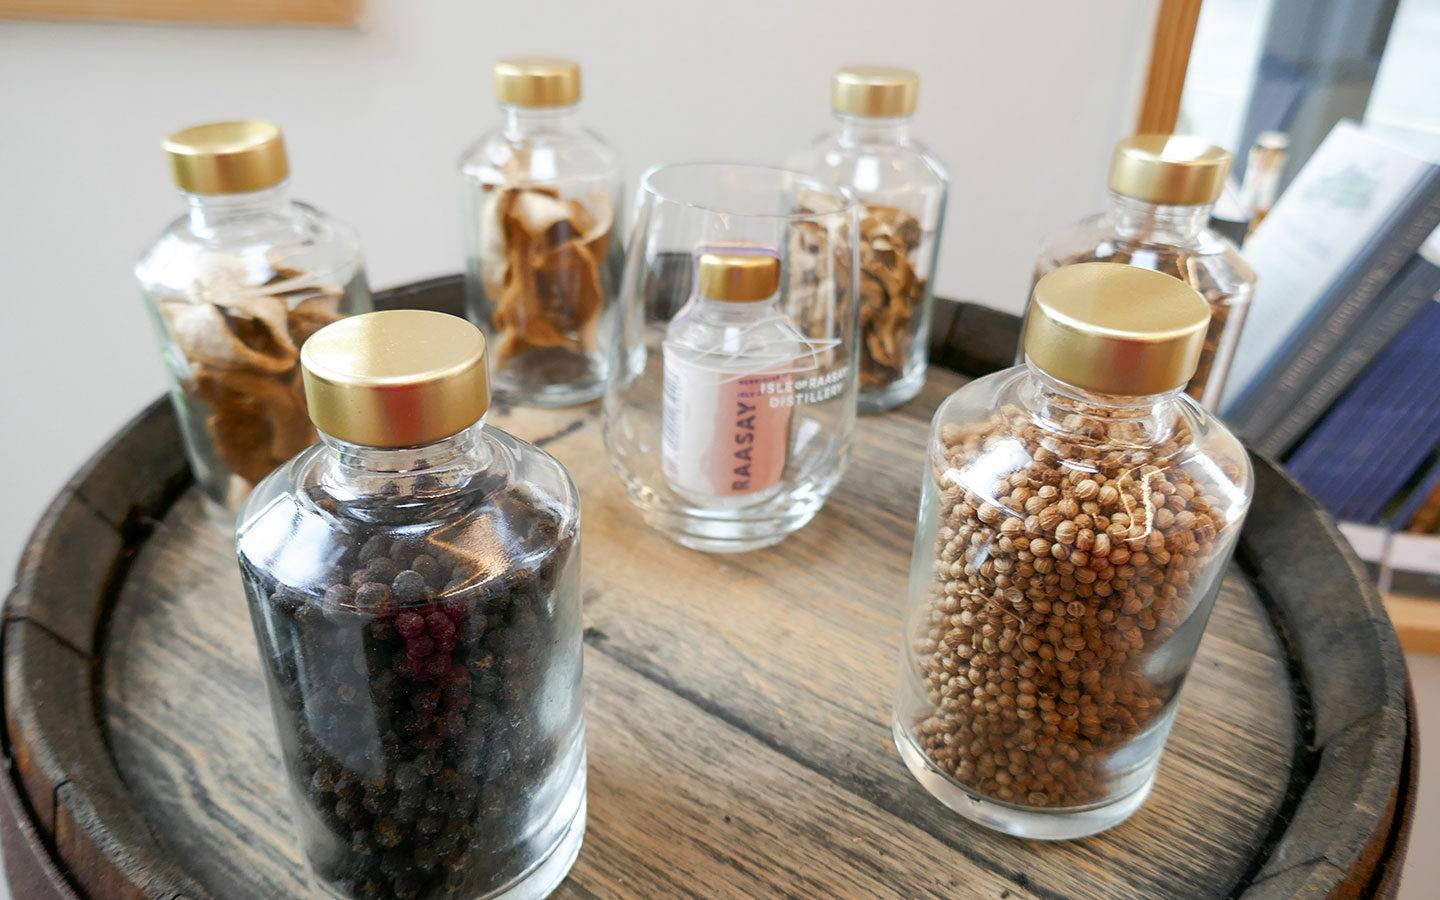 Botanicals for Raasay gin from the Isle of Raasay Distillery